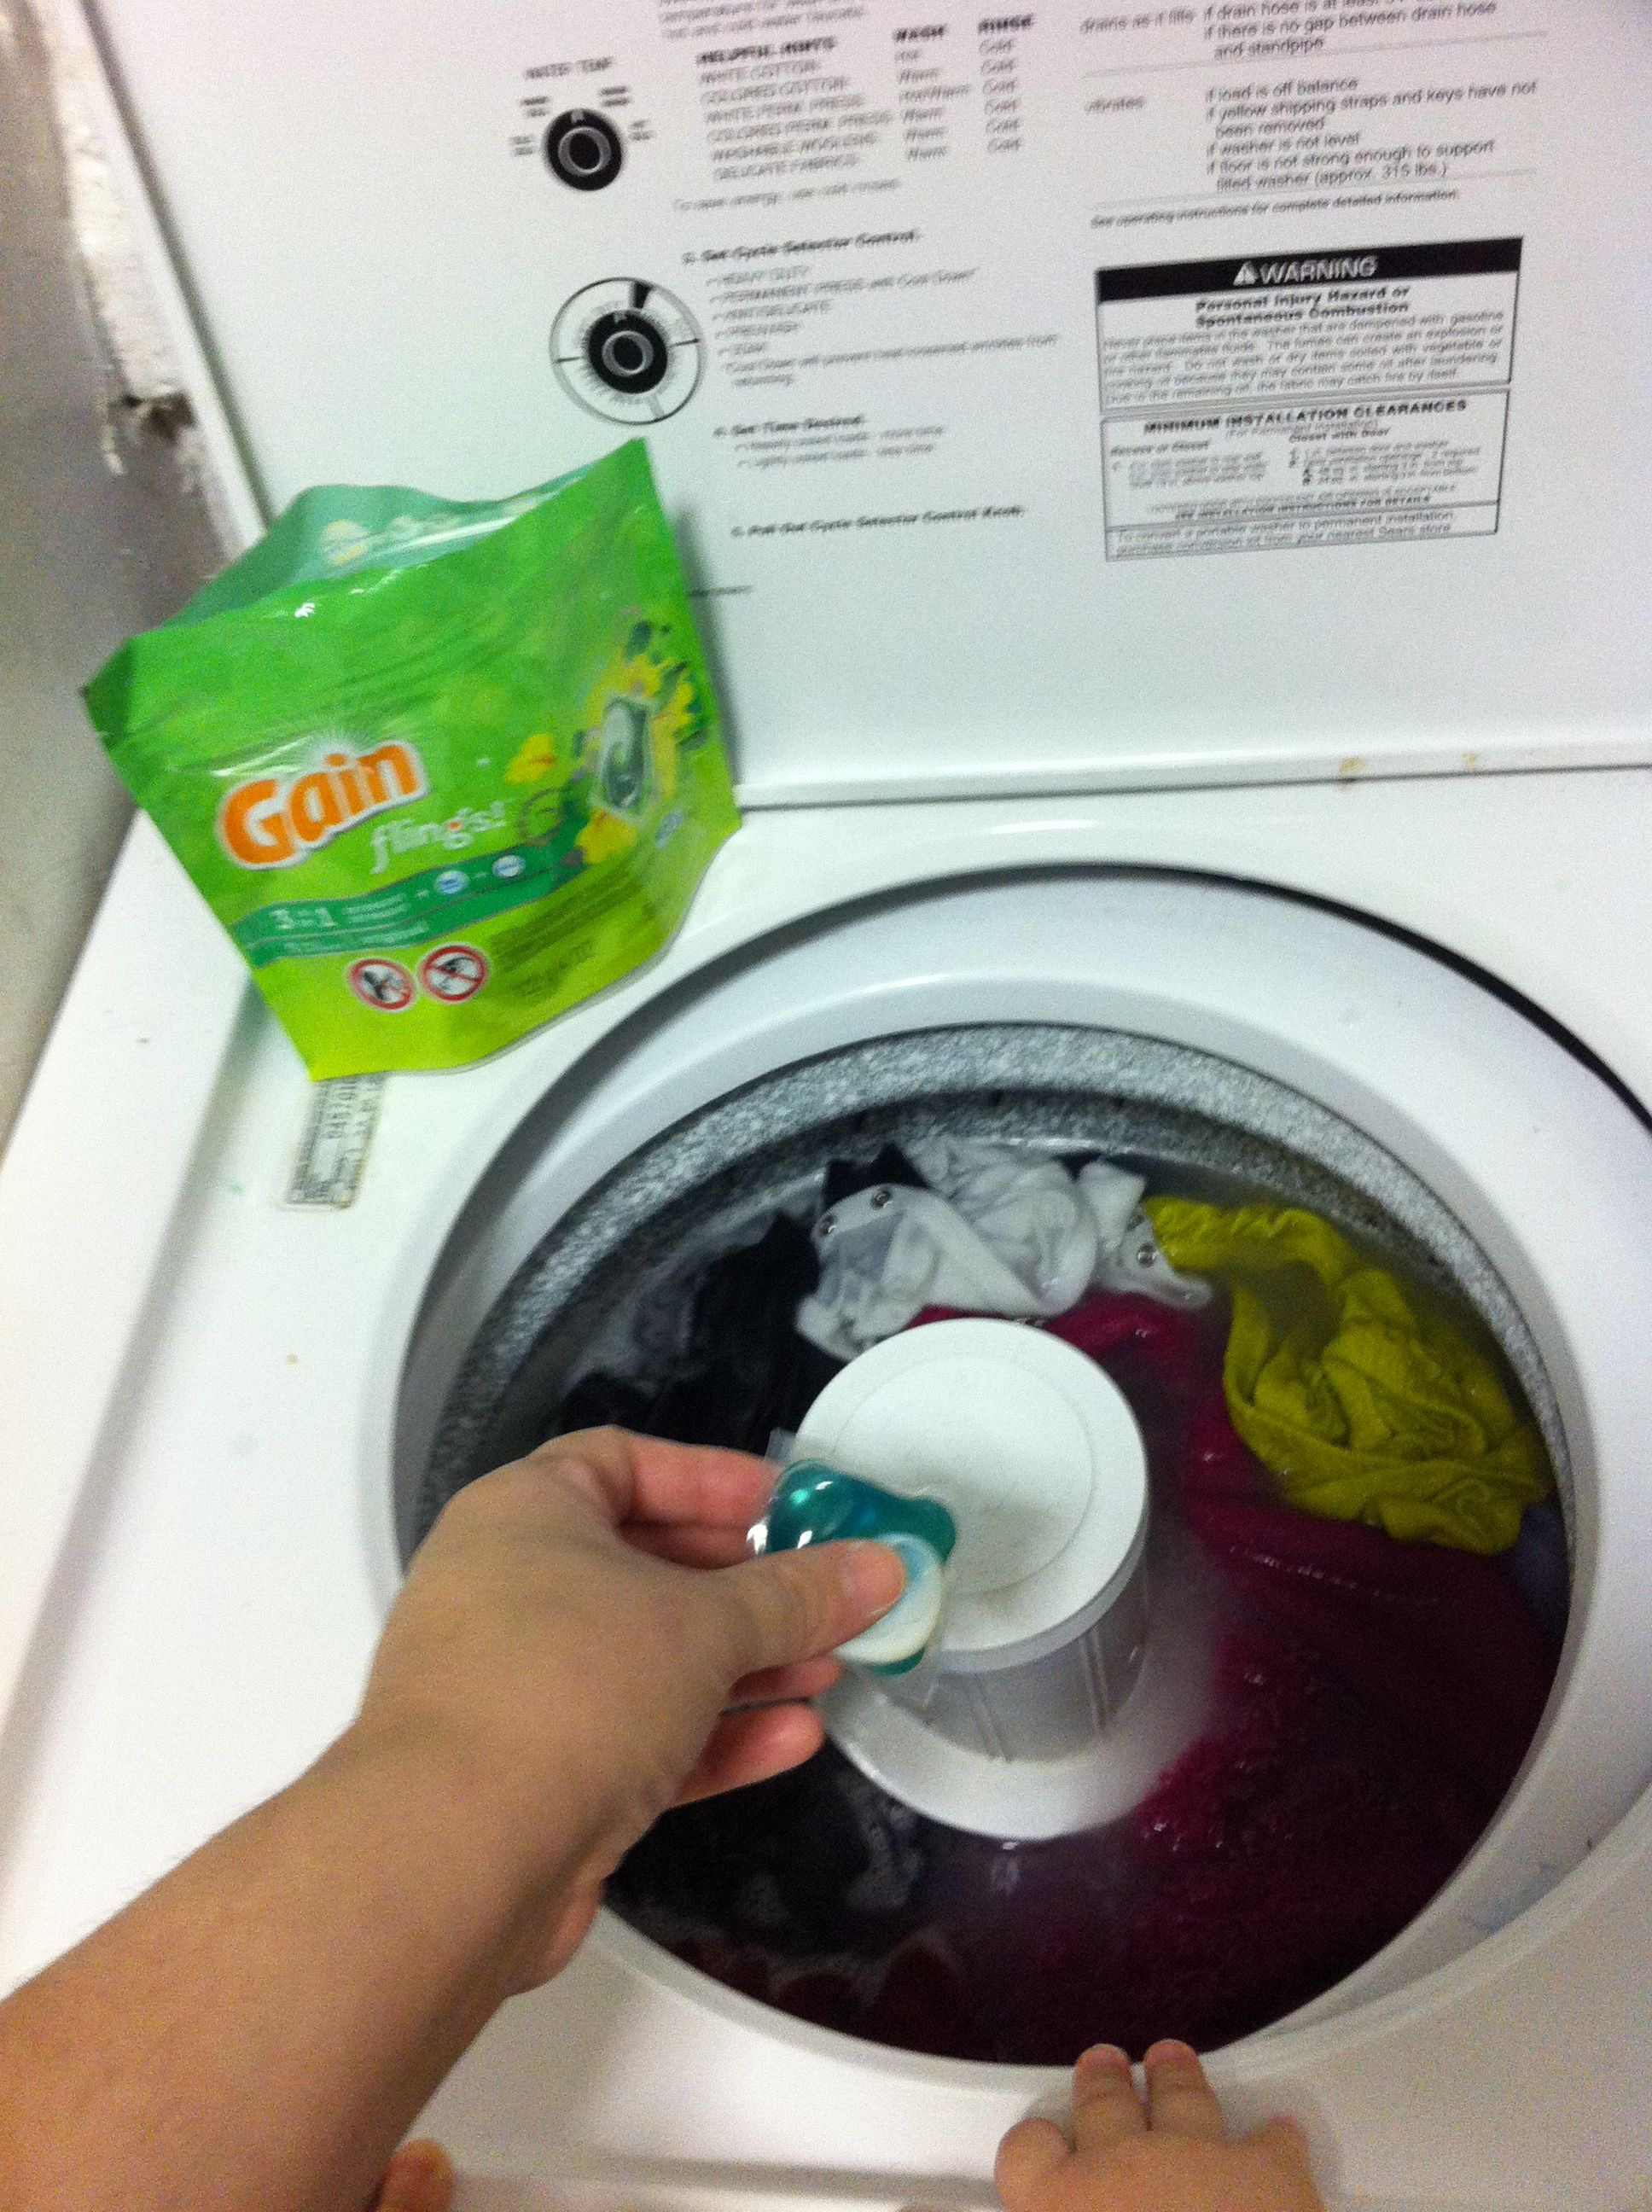 I Found Out It Was Better To Use The Gain Laundry Detergent